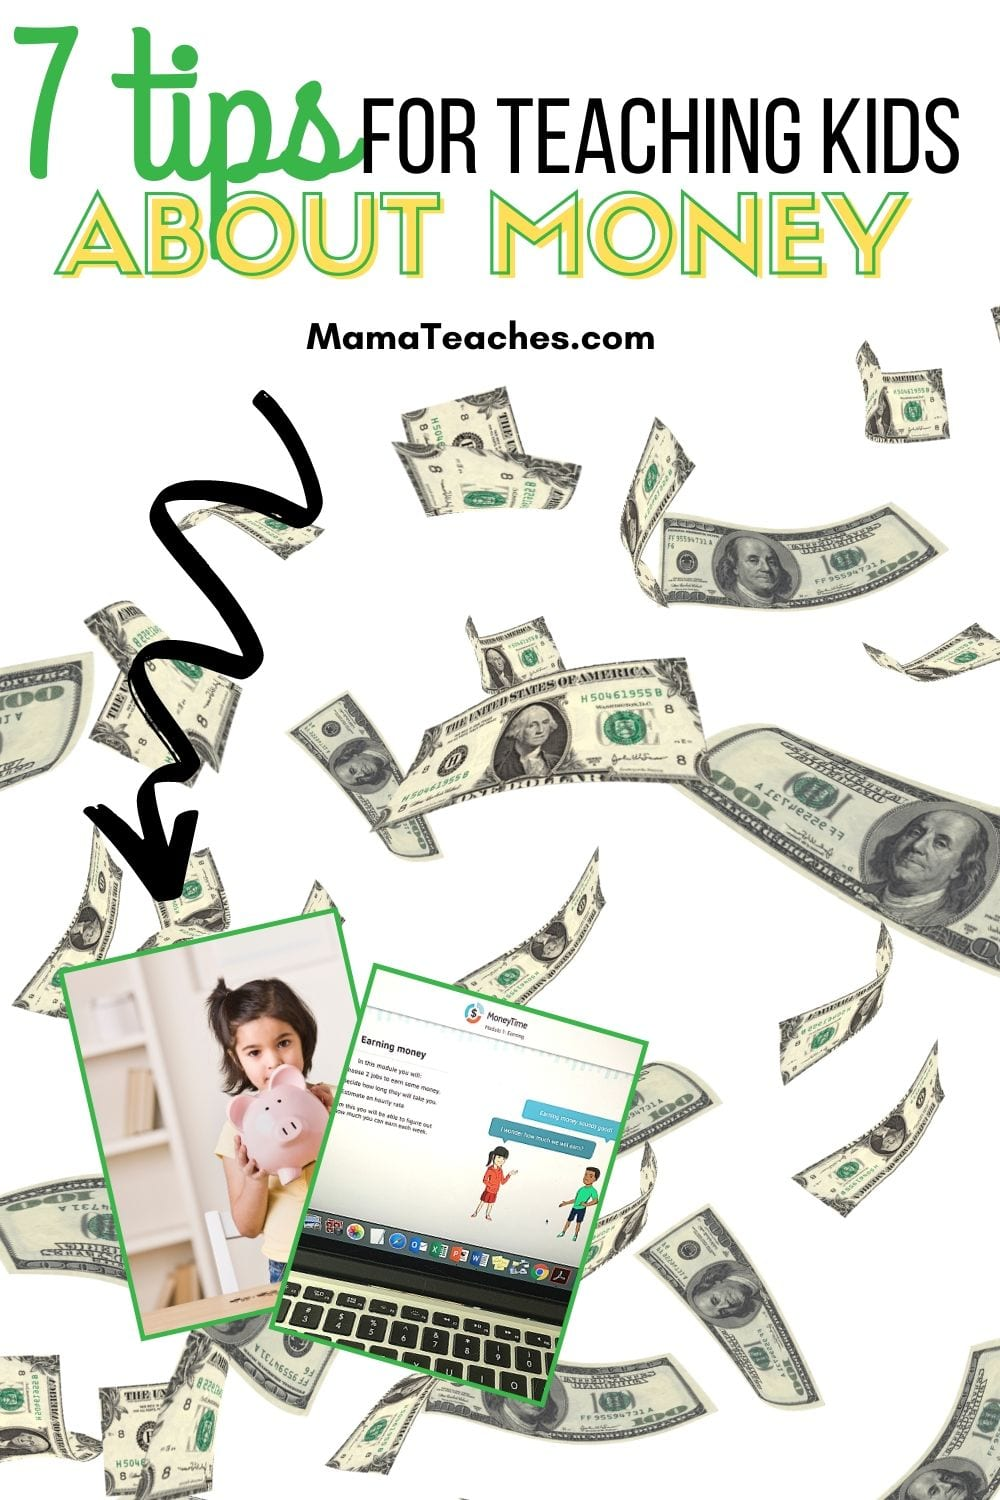 7 Tips for Teaching Kids About Money at Home